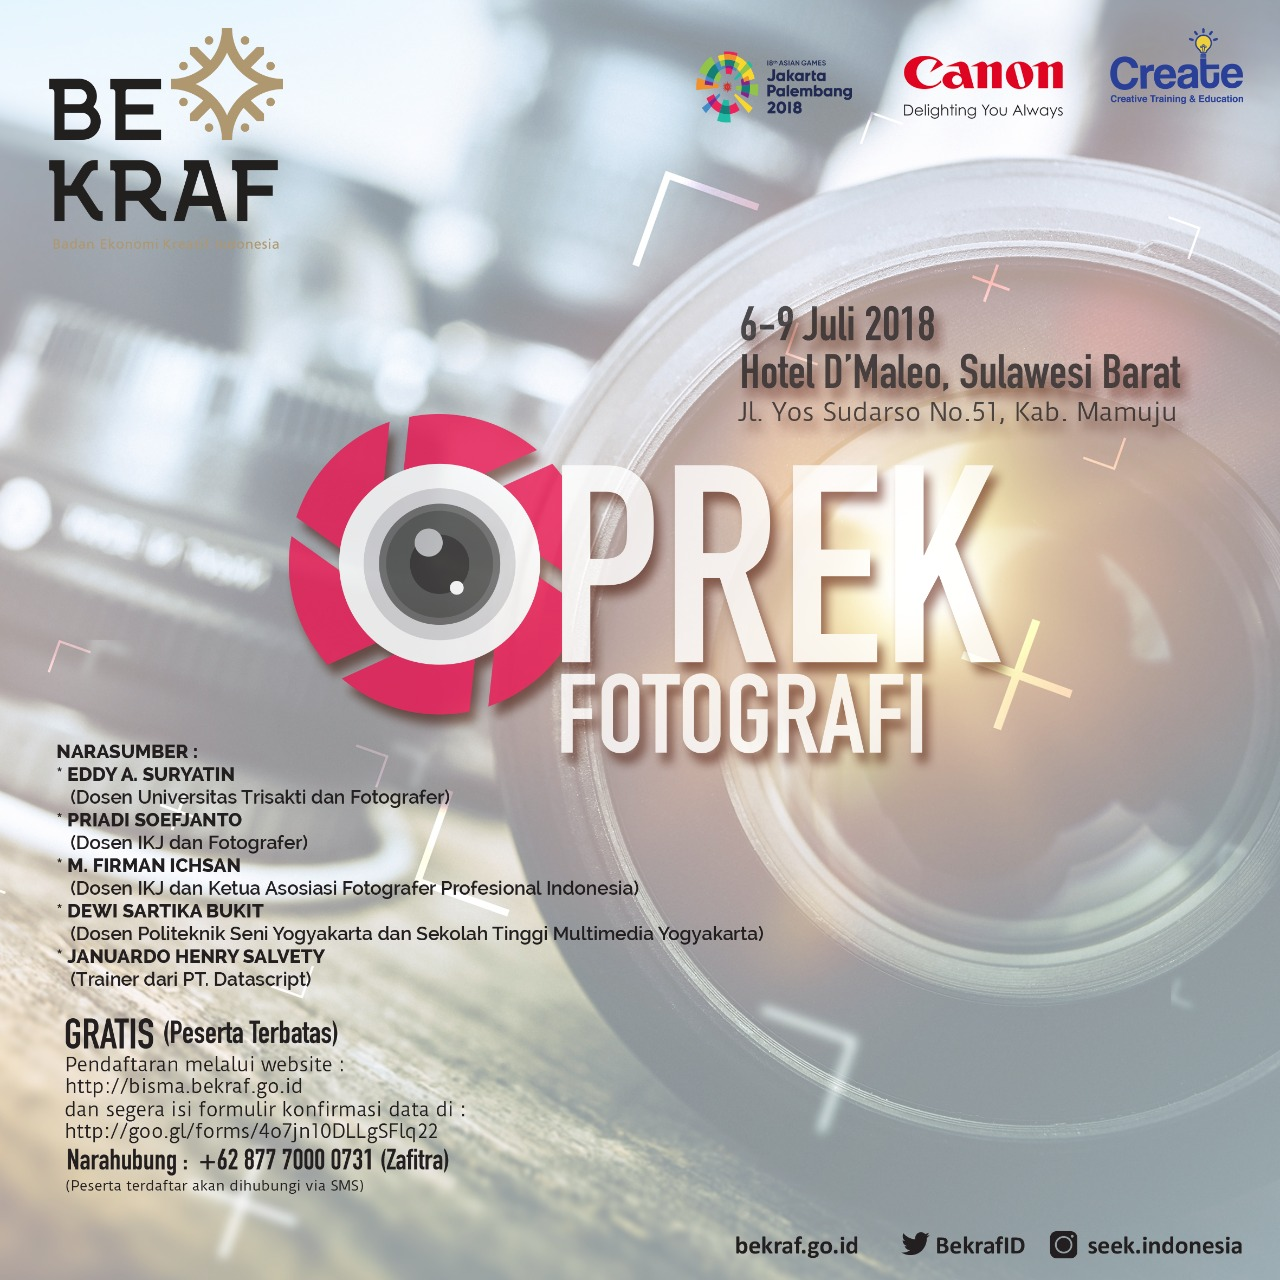 Bekraf Gelar Workshop Fotografi Gratis